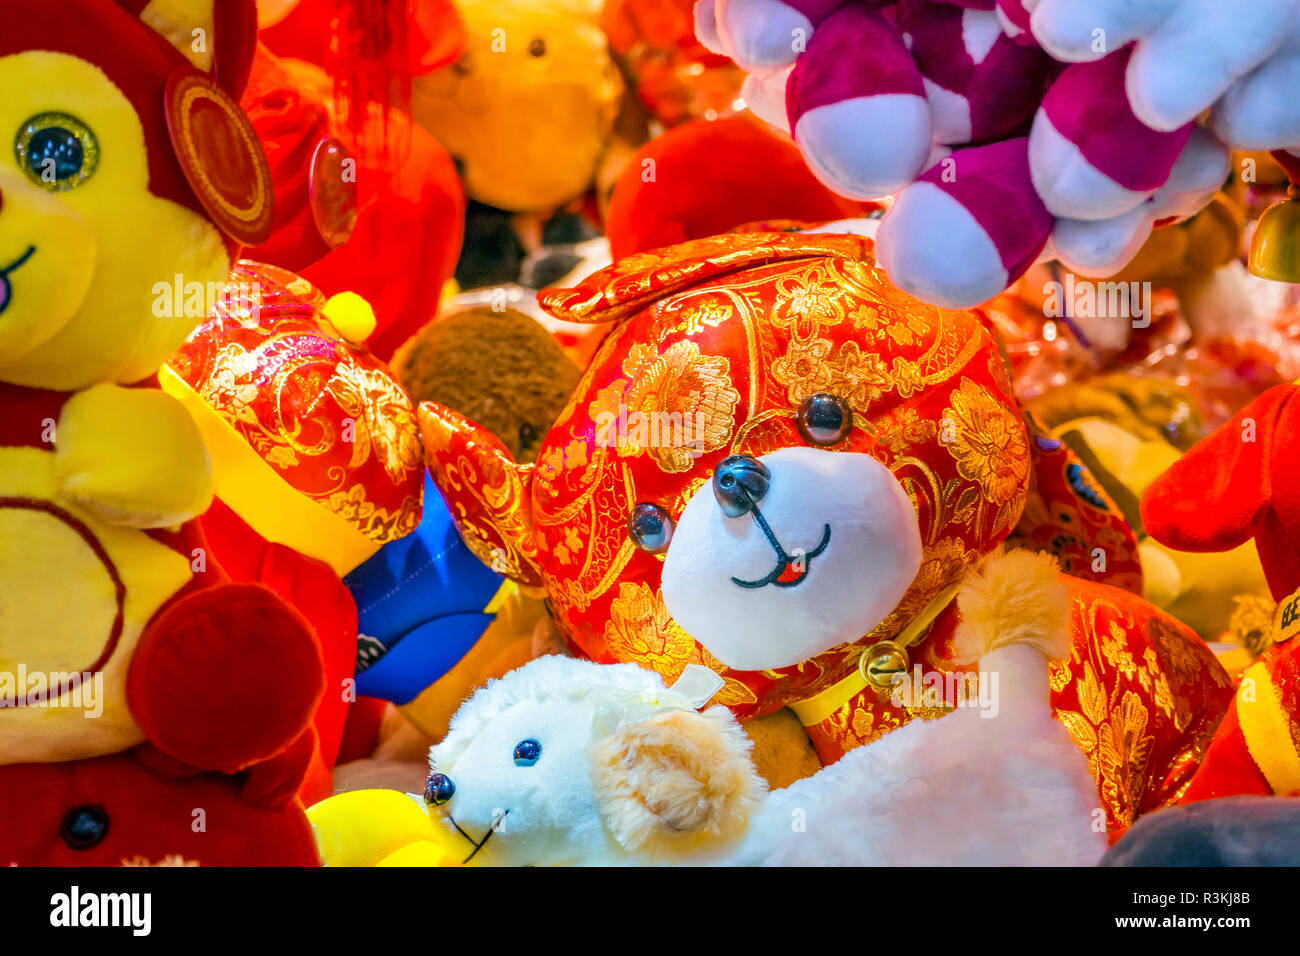 red ancient dogs decorations beijing china 2018 year of the dog in chinese lunar new year decorations hung by many chinese as decorations